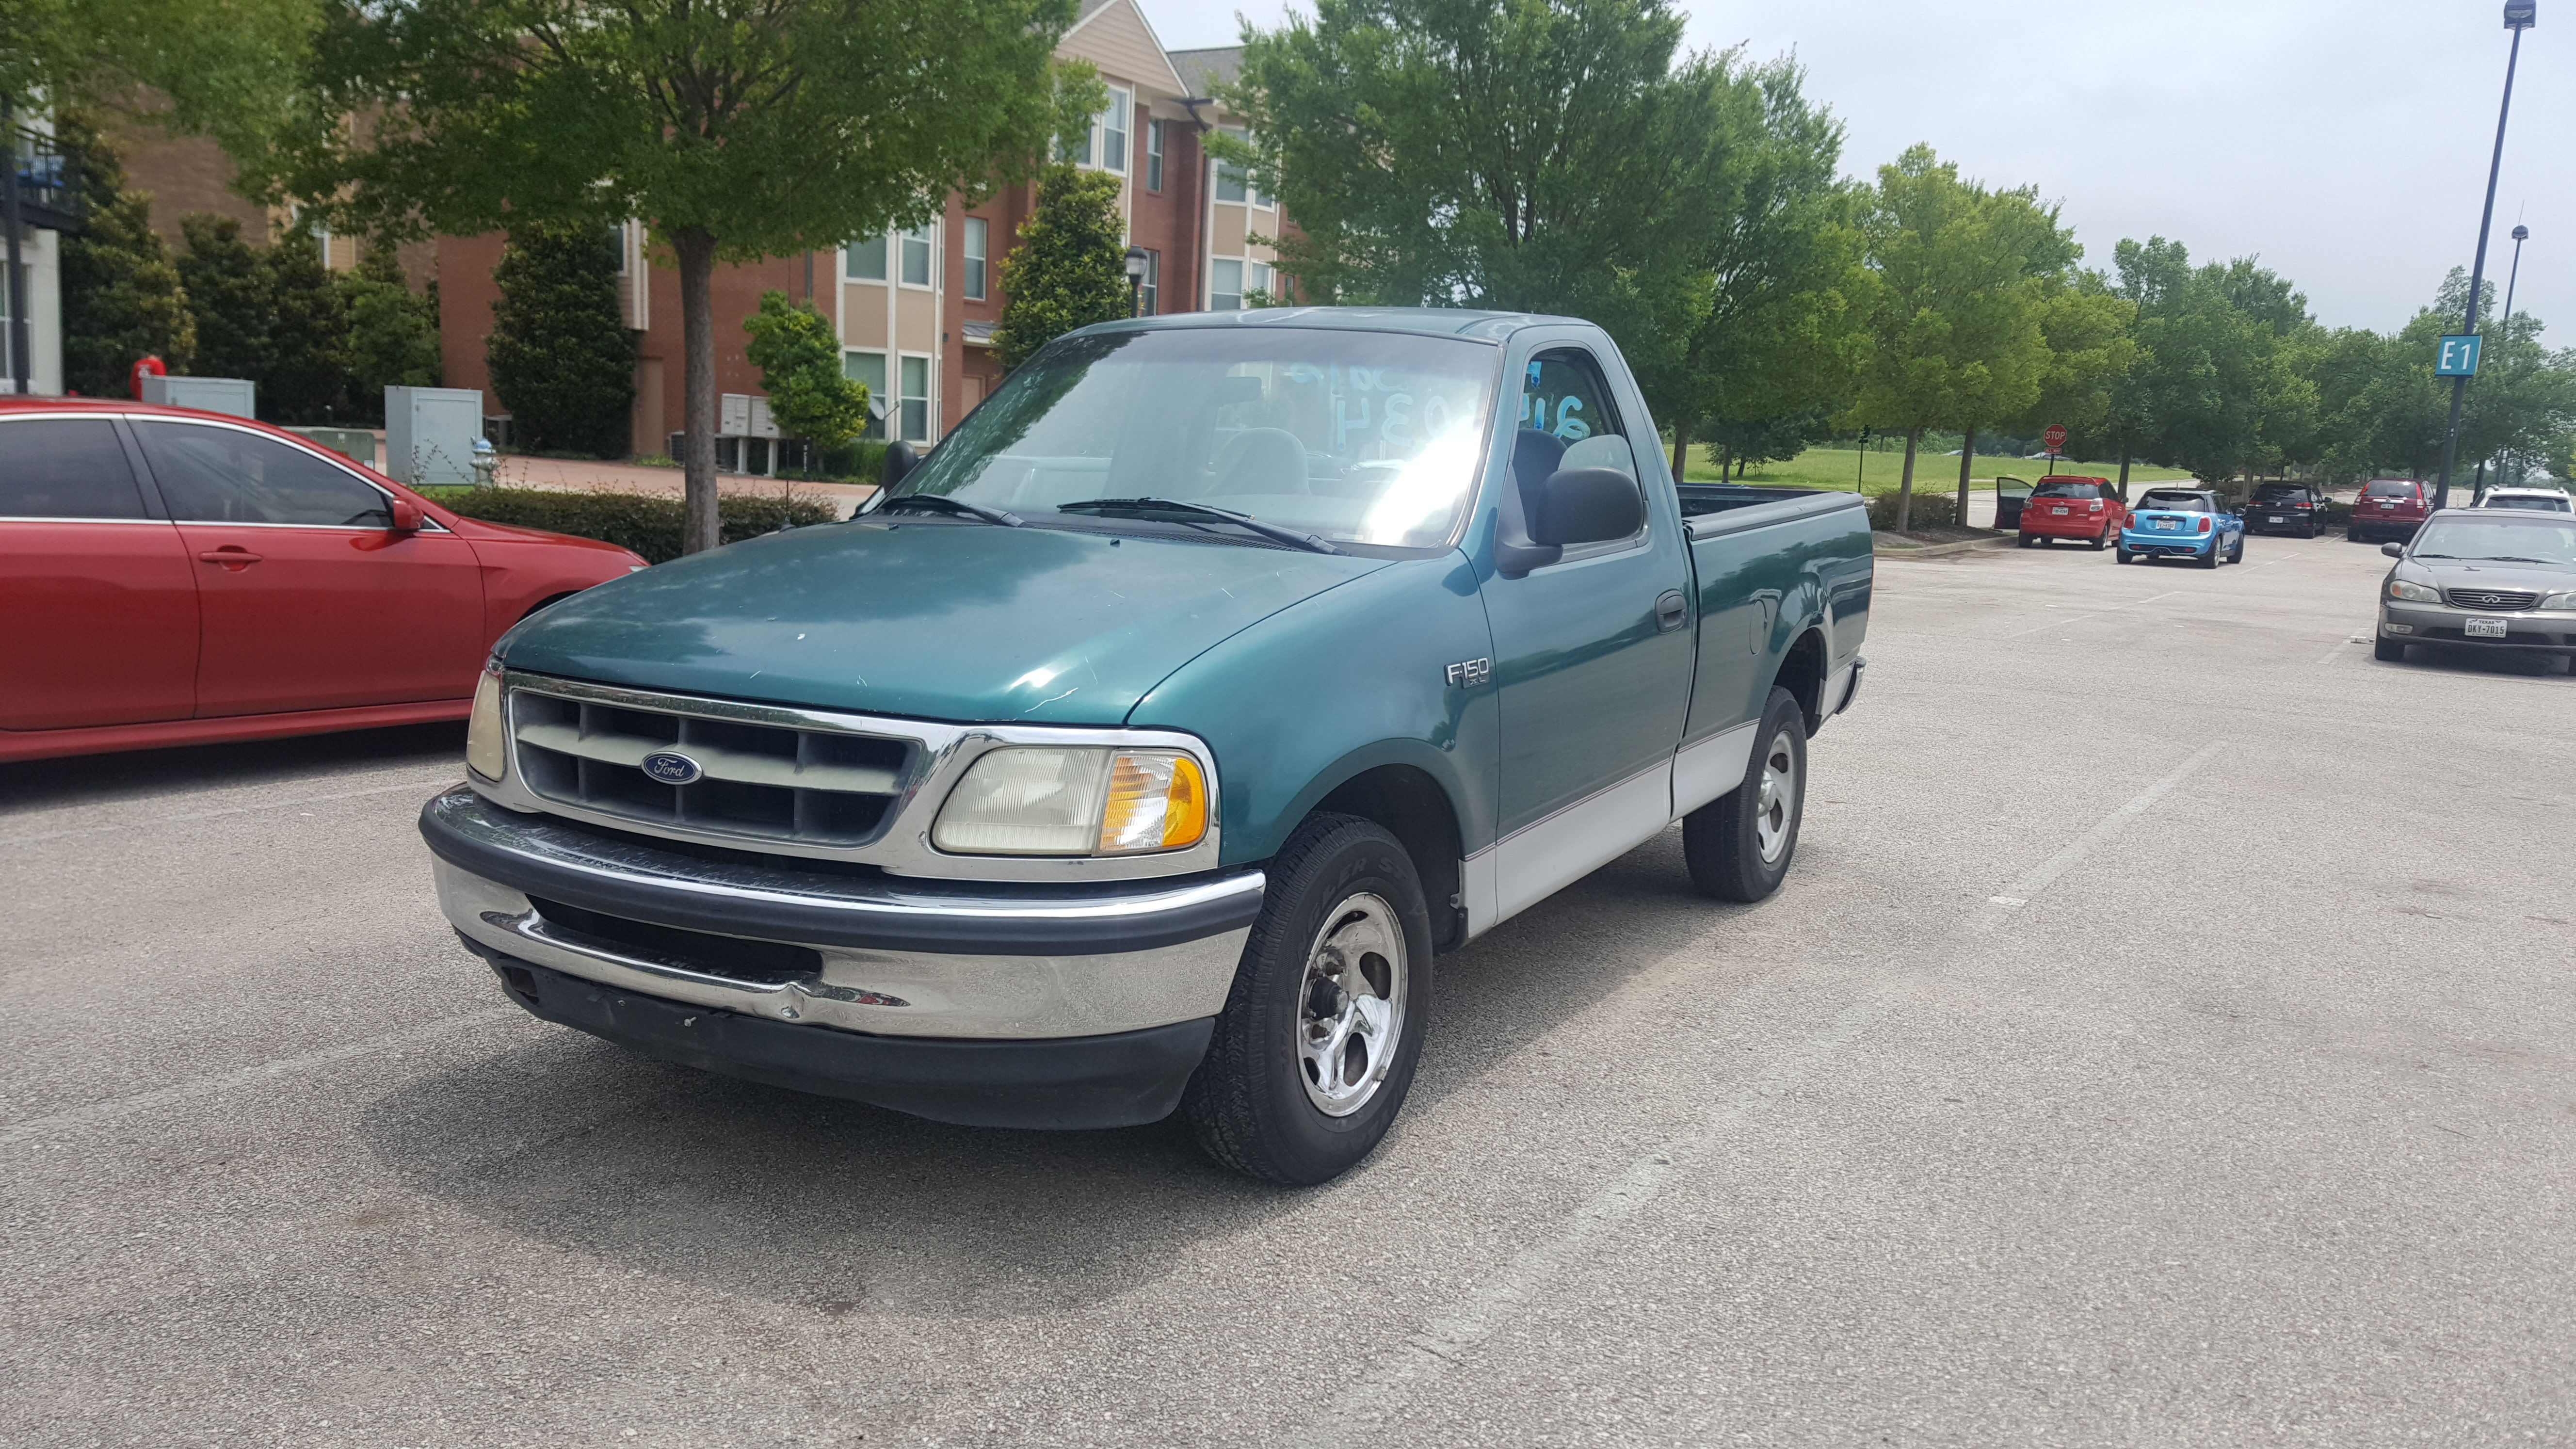 1998 Ford F-150 Cash for cars